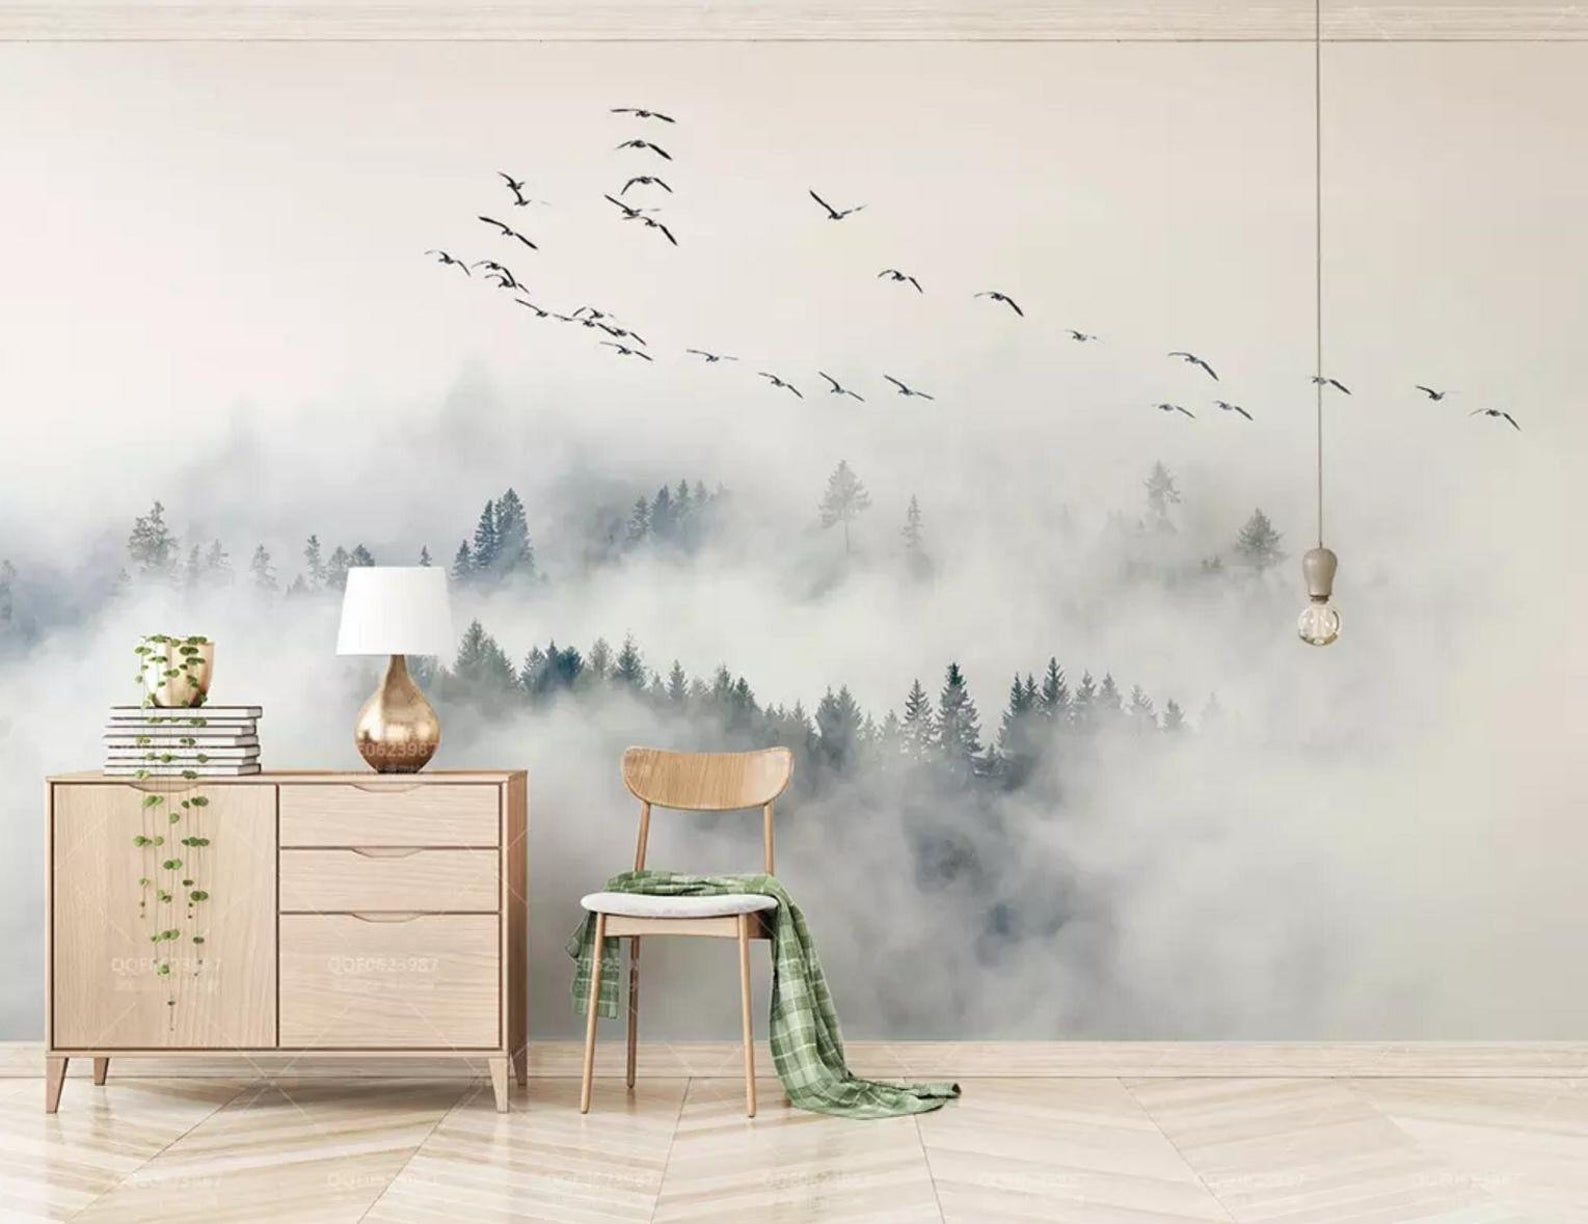 3d Dreams Clouds Forests Birds Wallpaper Removable Self Adhesive Wallpaper Wall Mural Vintage Art Peel And Stick Tapeten Tapeten Wandbilder Wandbild Wand